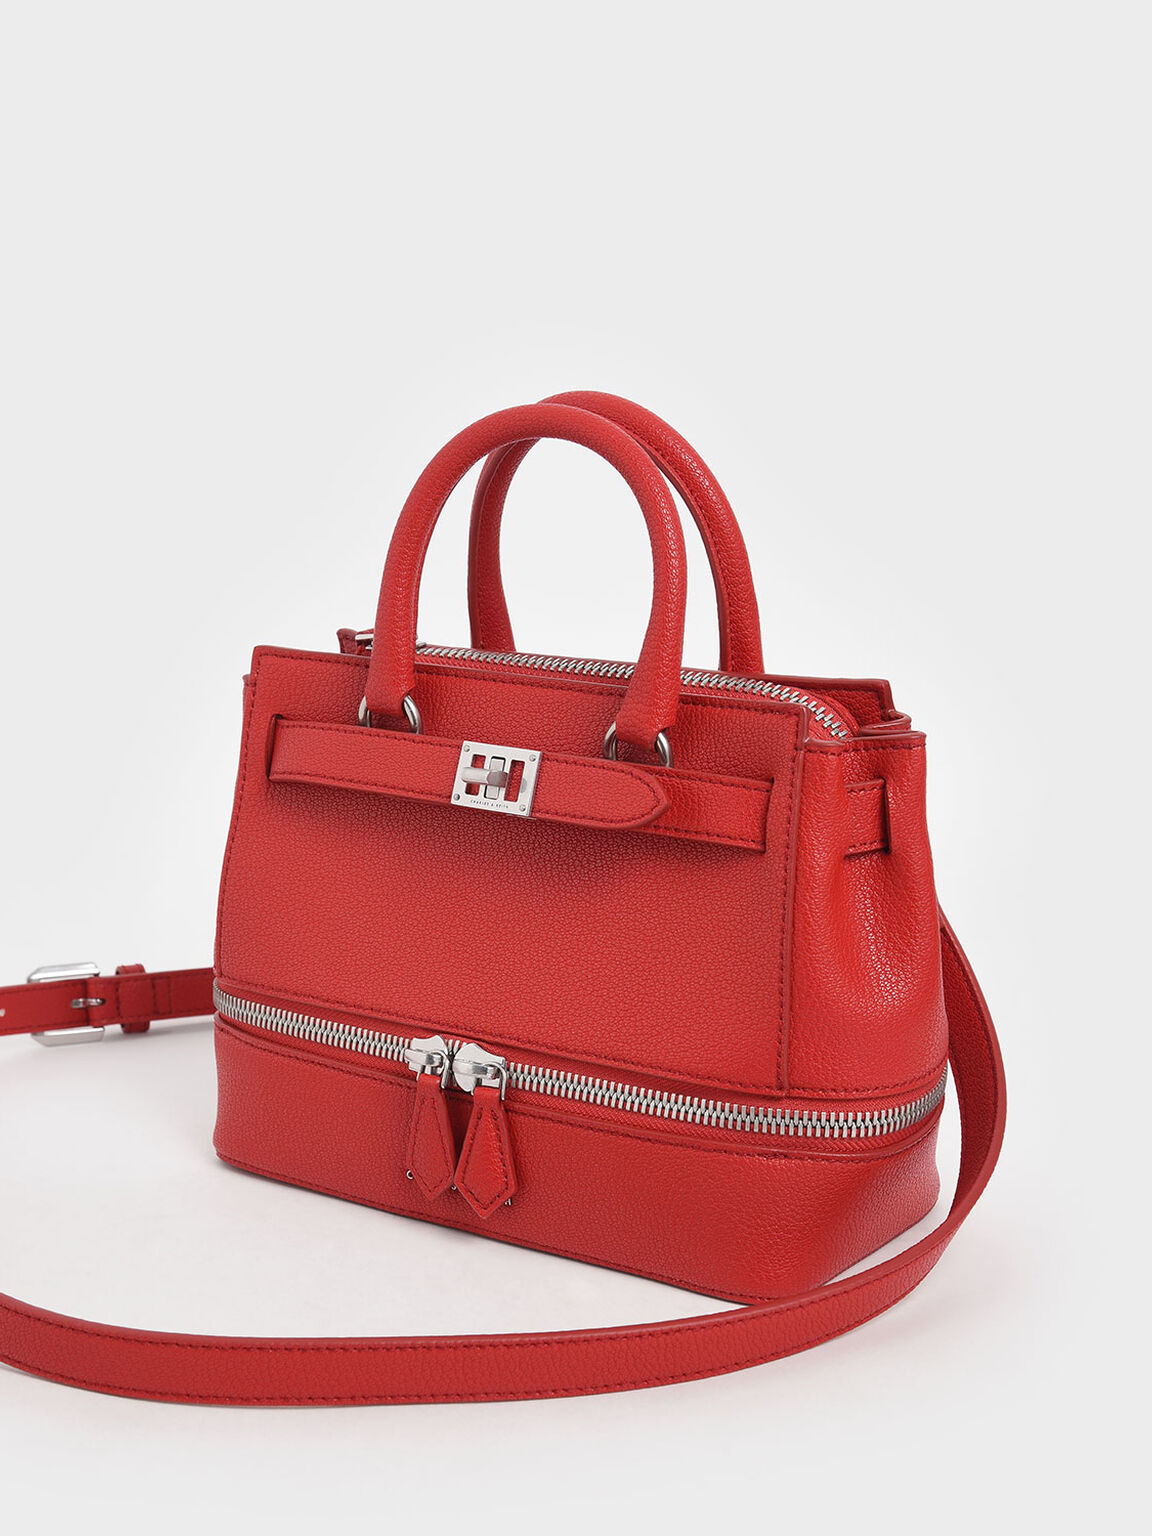 Two-Way Zip Structured Bag, Red, hi-res